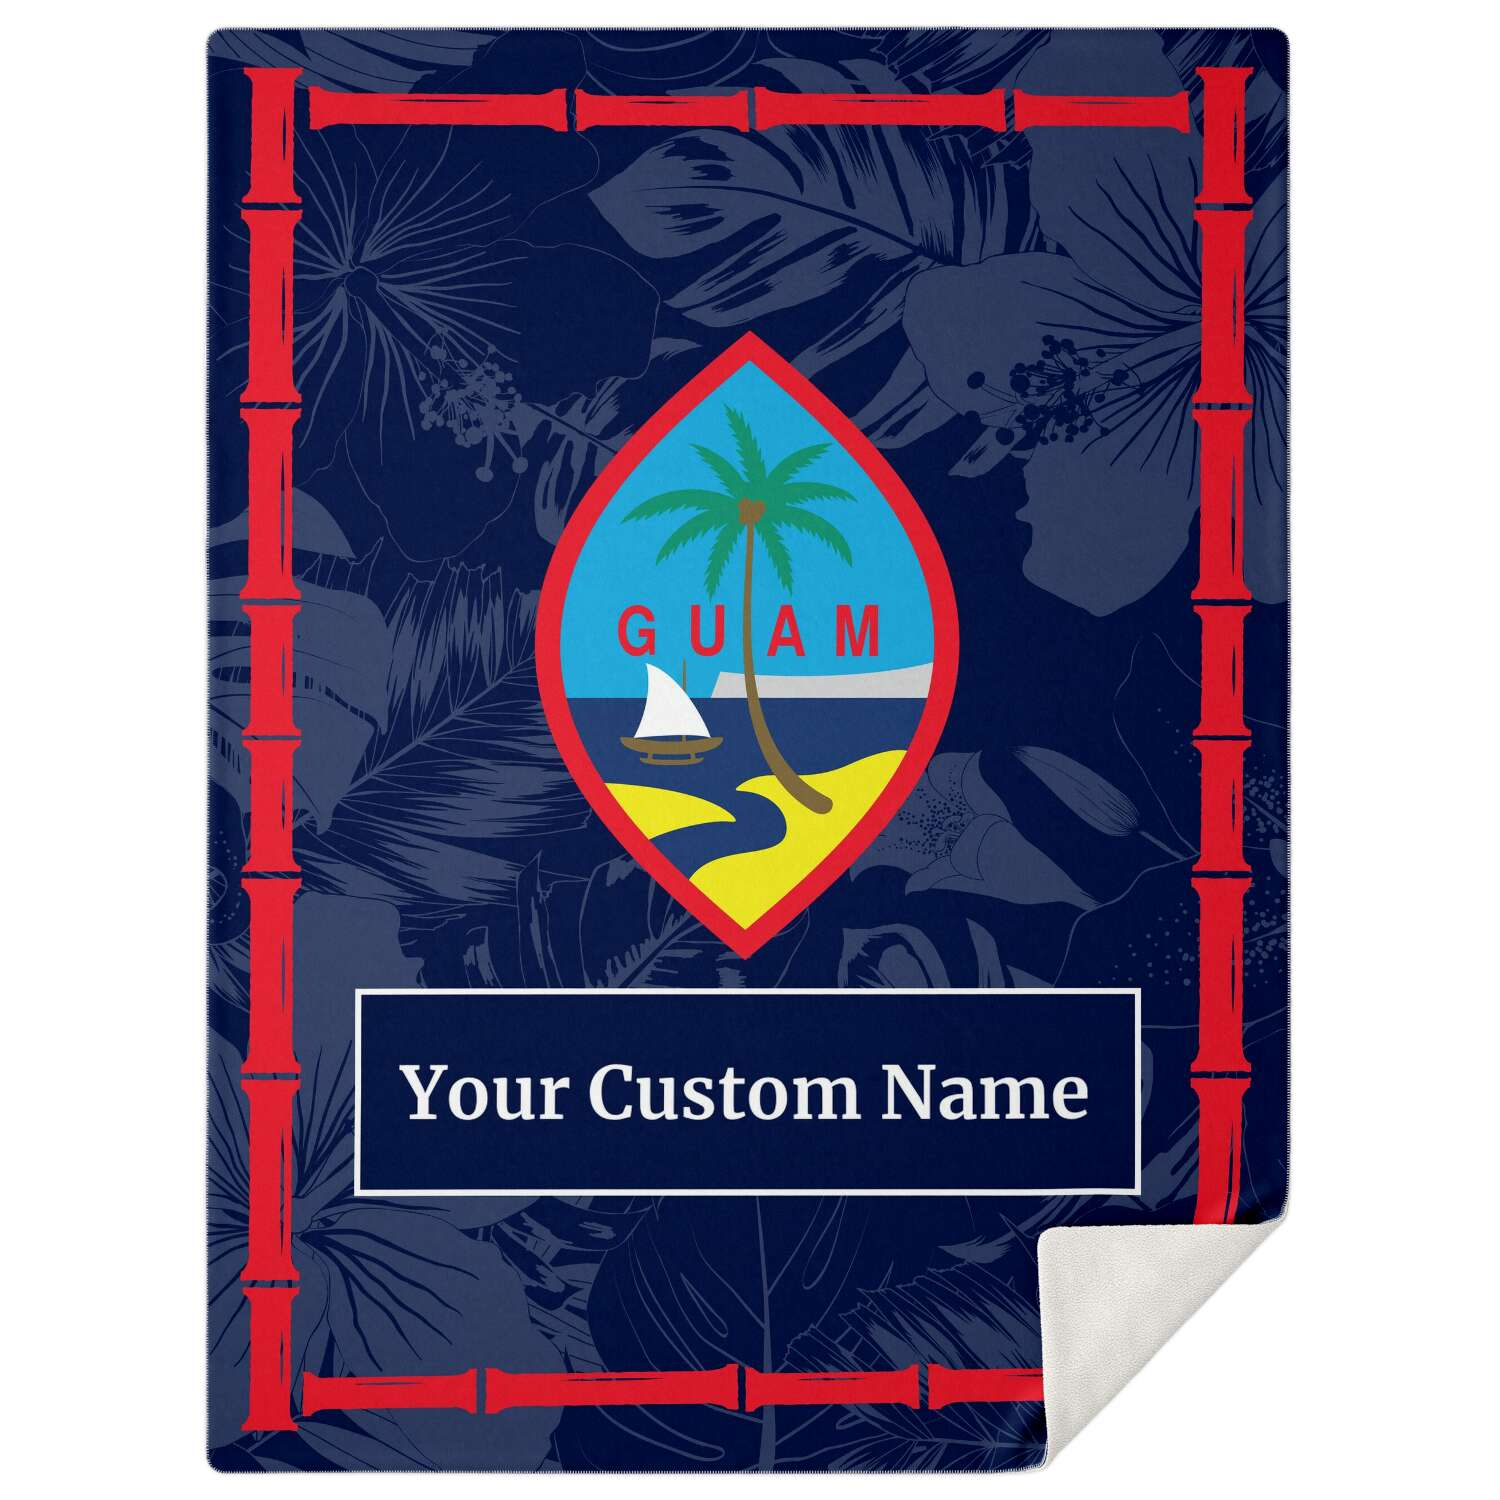 Guam Flag Bamboo Microfleece Blanket with Personalization